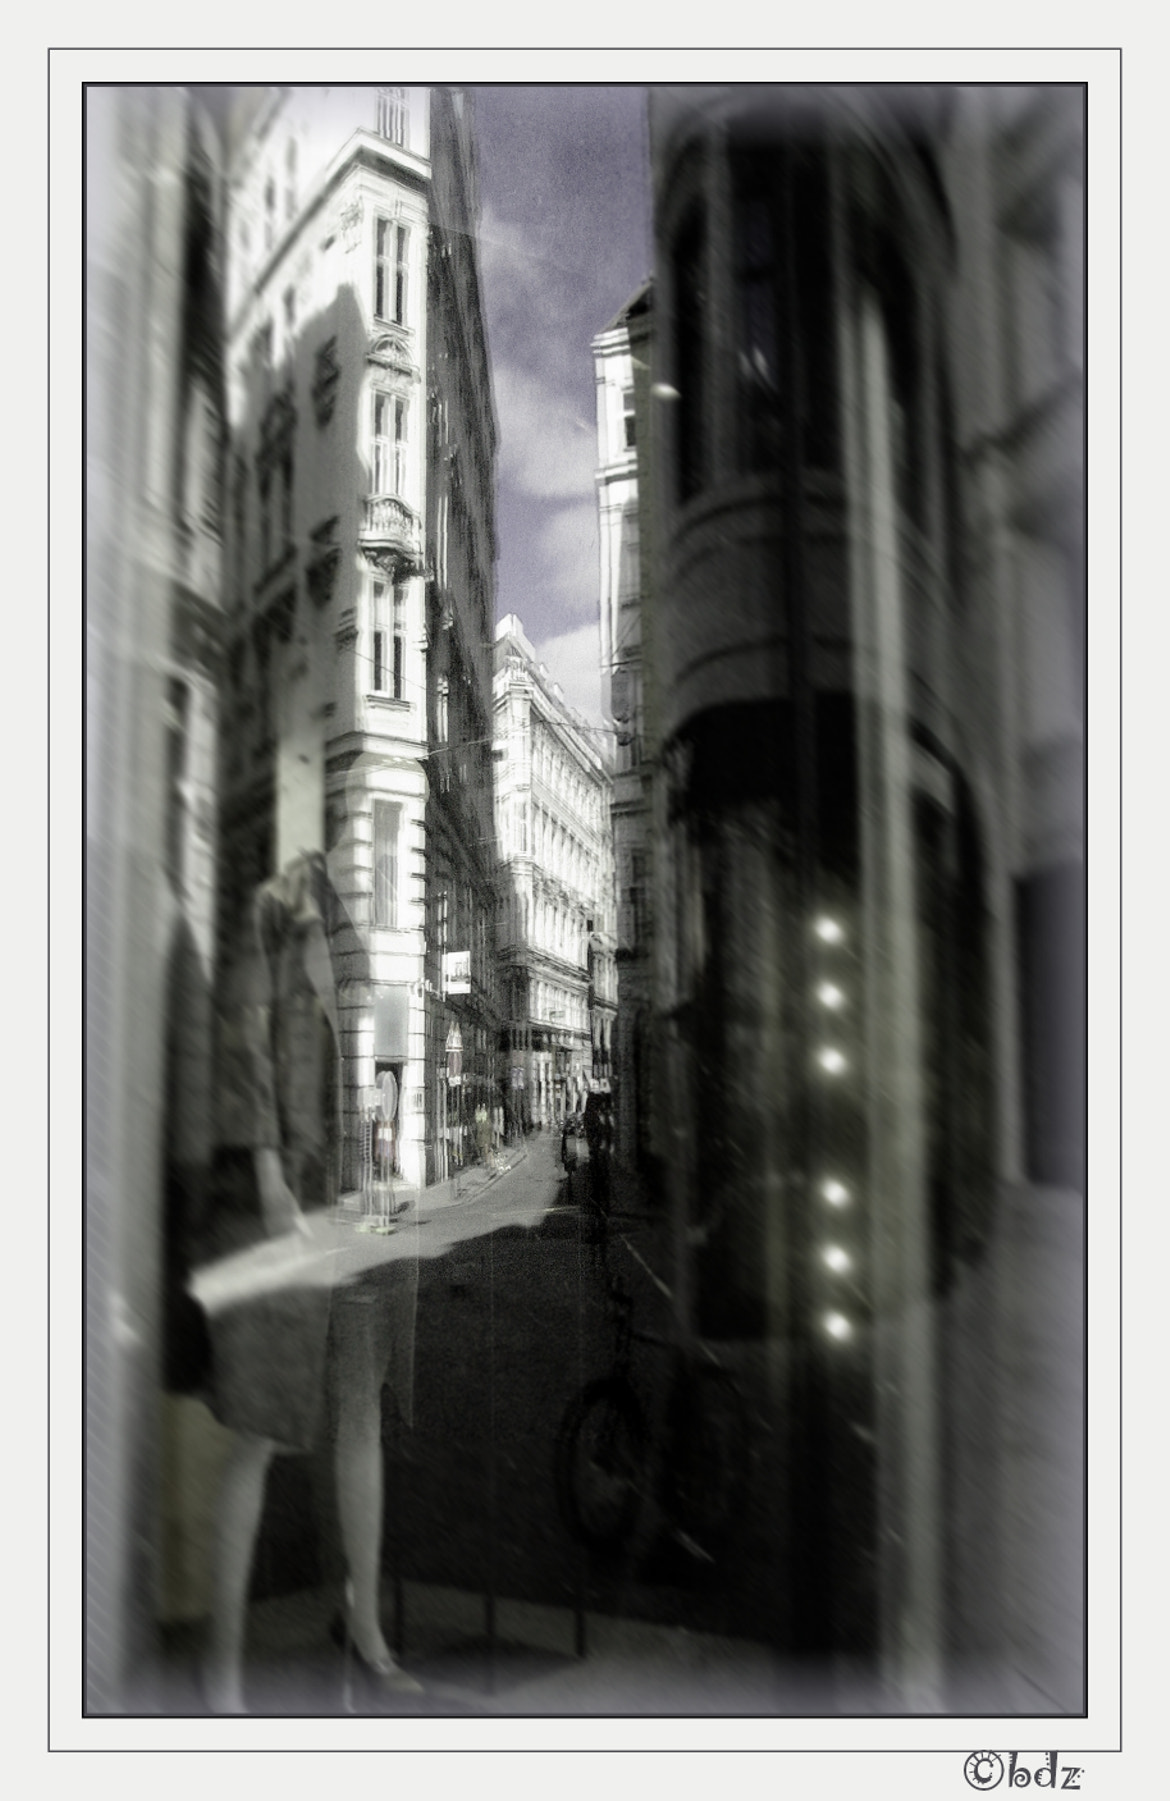 Photograph city reflections ... by Betty Ditscheid-Zweers on 500px